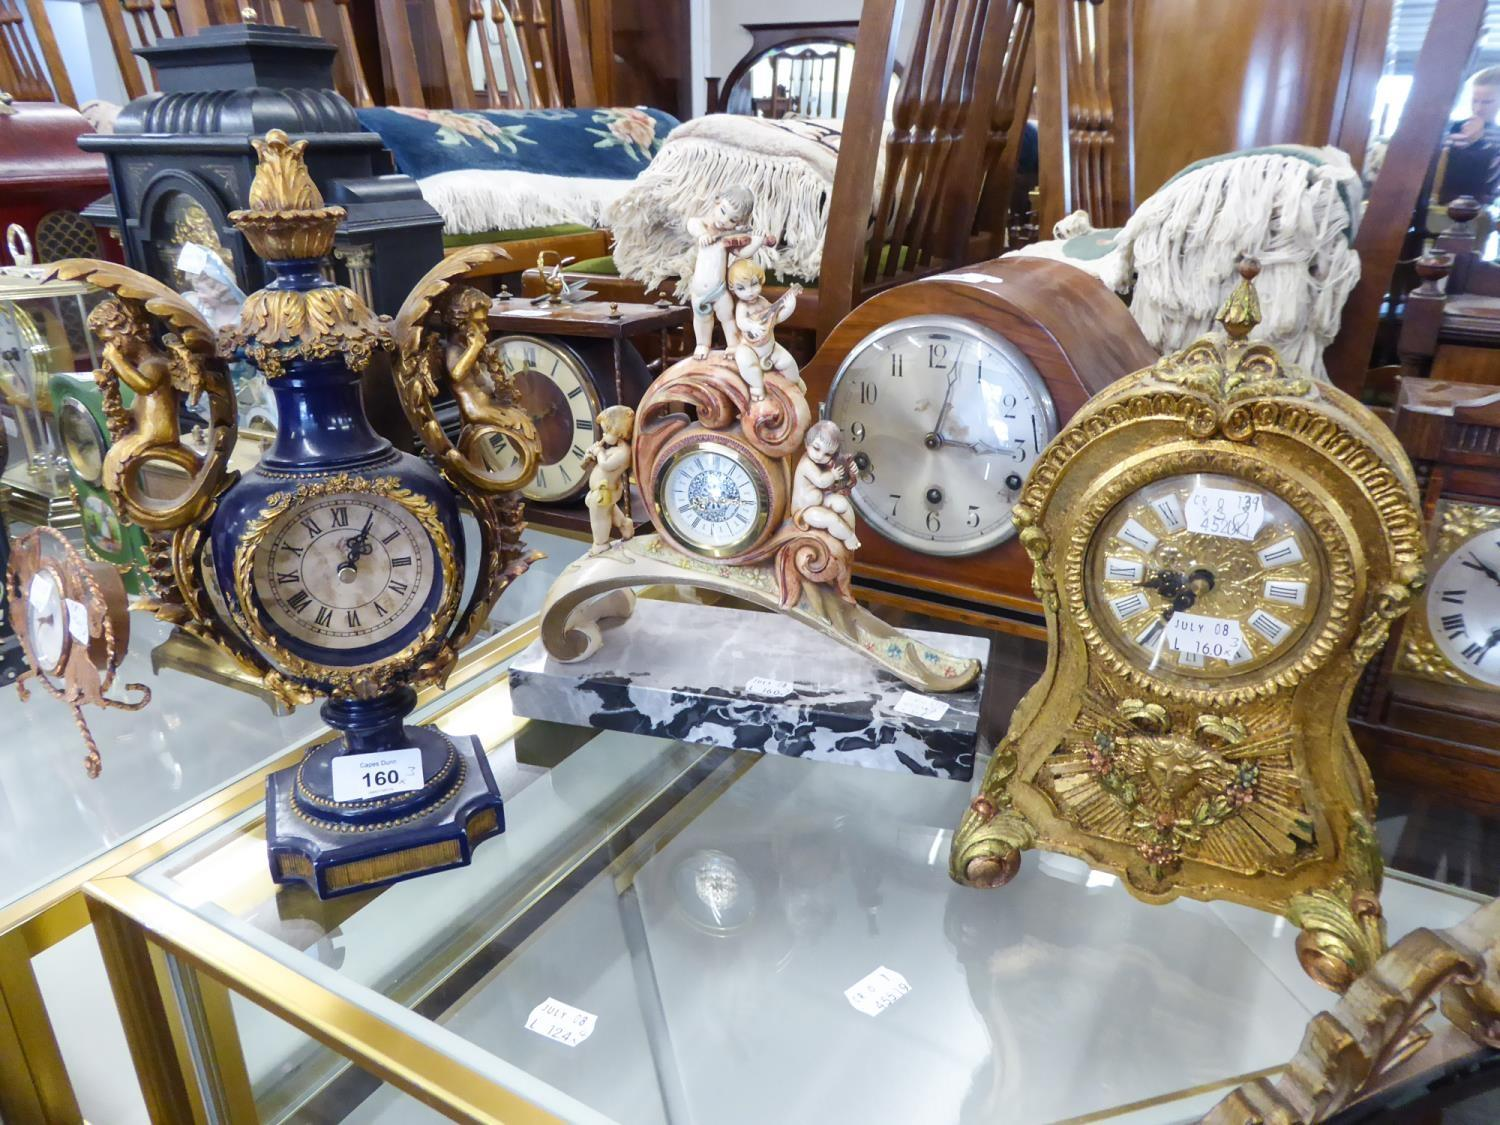 """Lot 160 - FRANKLIN MINT GIFT COMPOSITION """"THE KING LOUIS XIV MANTEL CLOCK, 10 1/2"""" HIGH, ANOTHER BLUE AND GILT"""